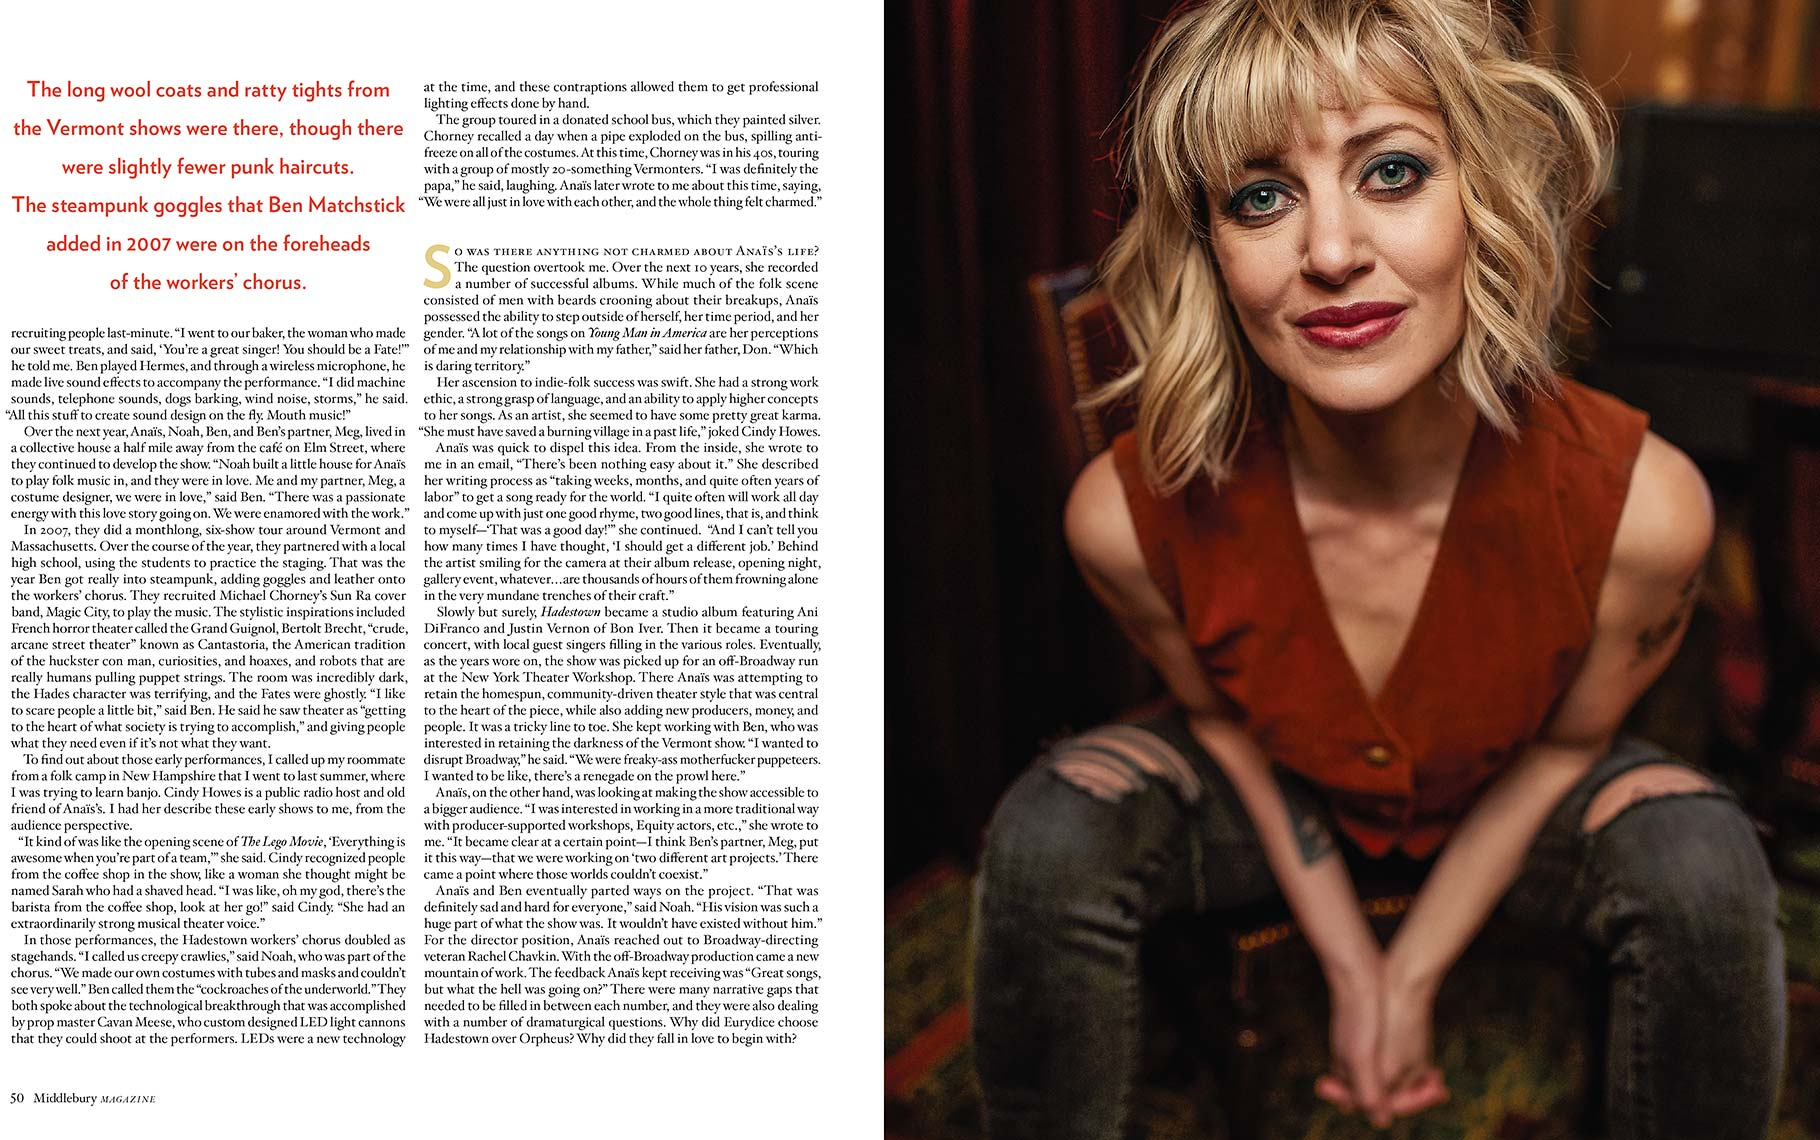 Anaïs Mitchell Cover Story -  Inside Portrait - Spring 2019, Middlebury Magazine